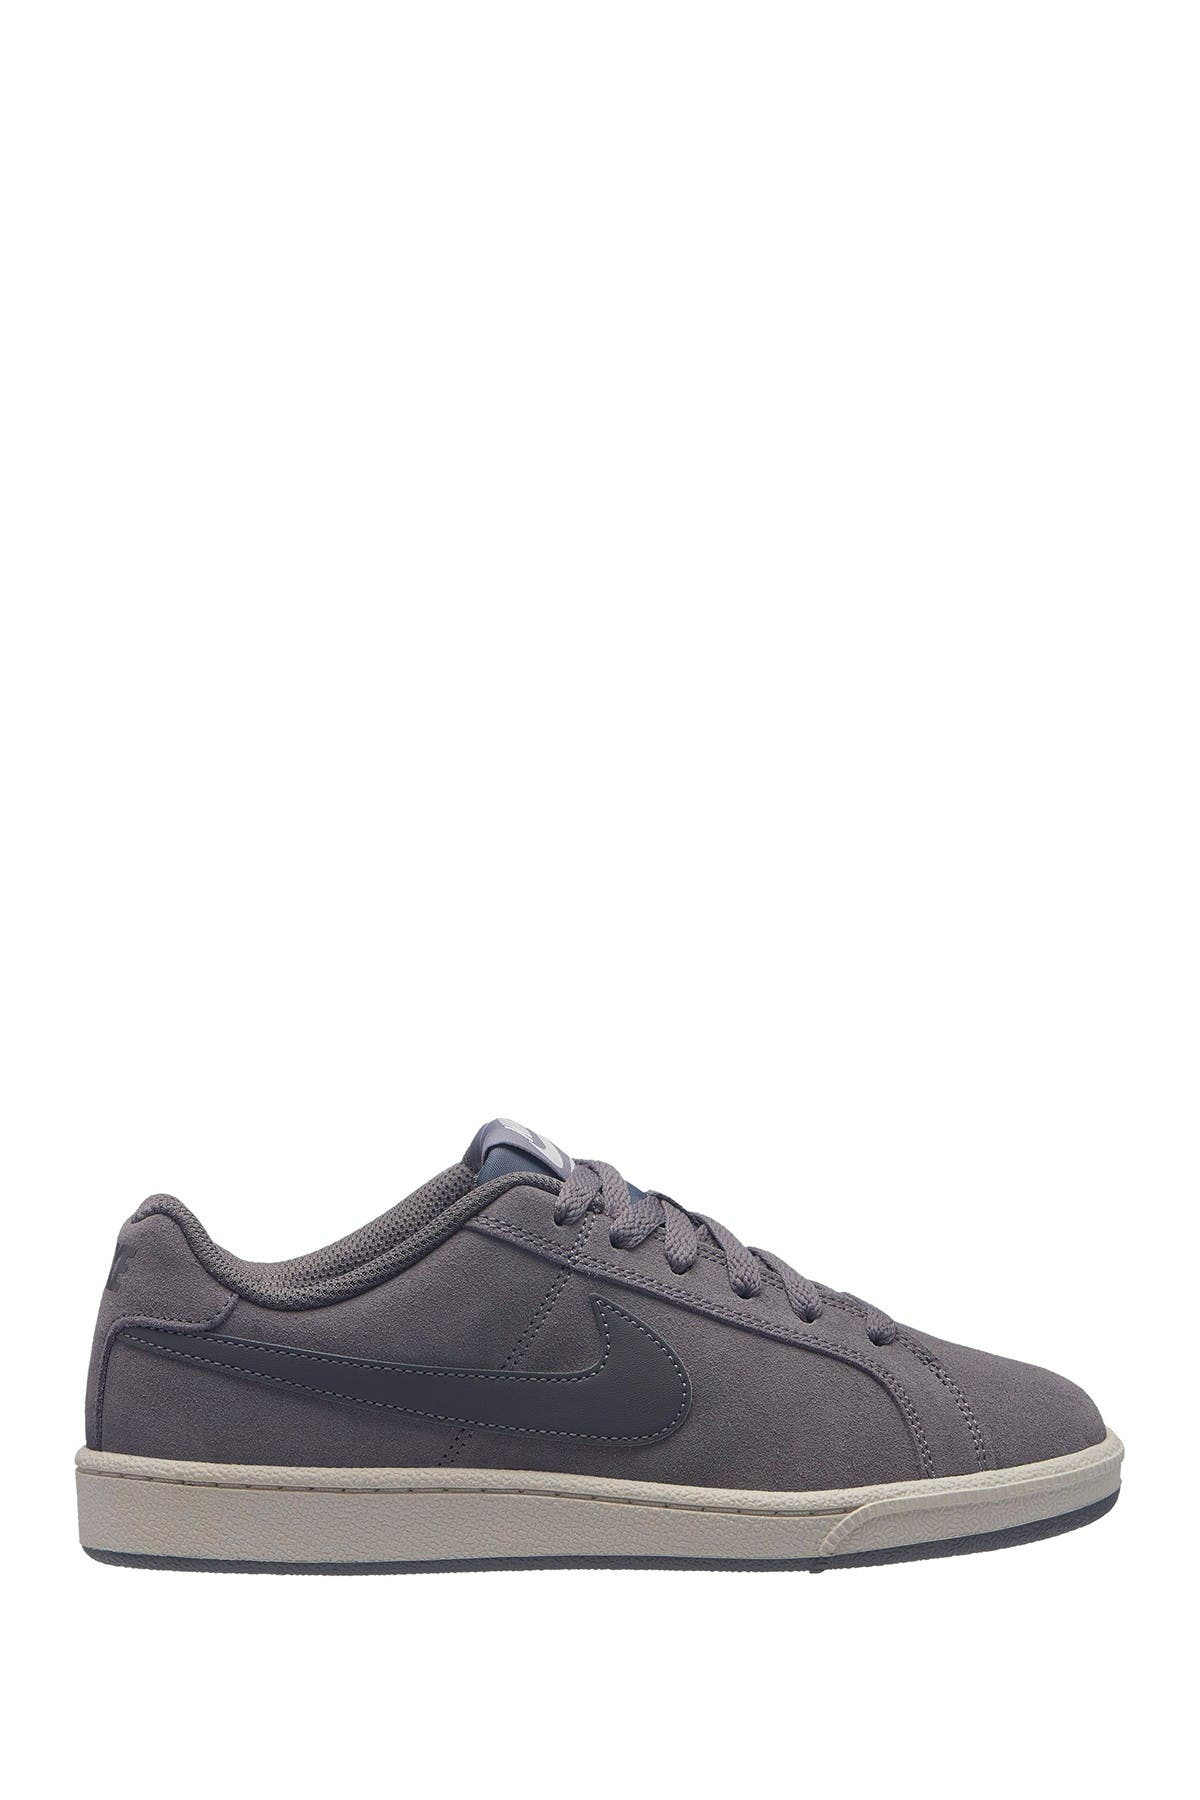 Image of Nike Court Royale Suede Sneaker